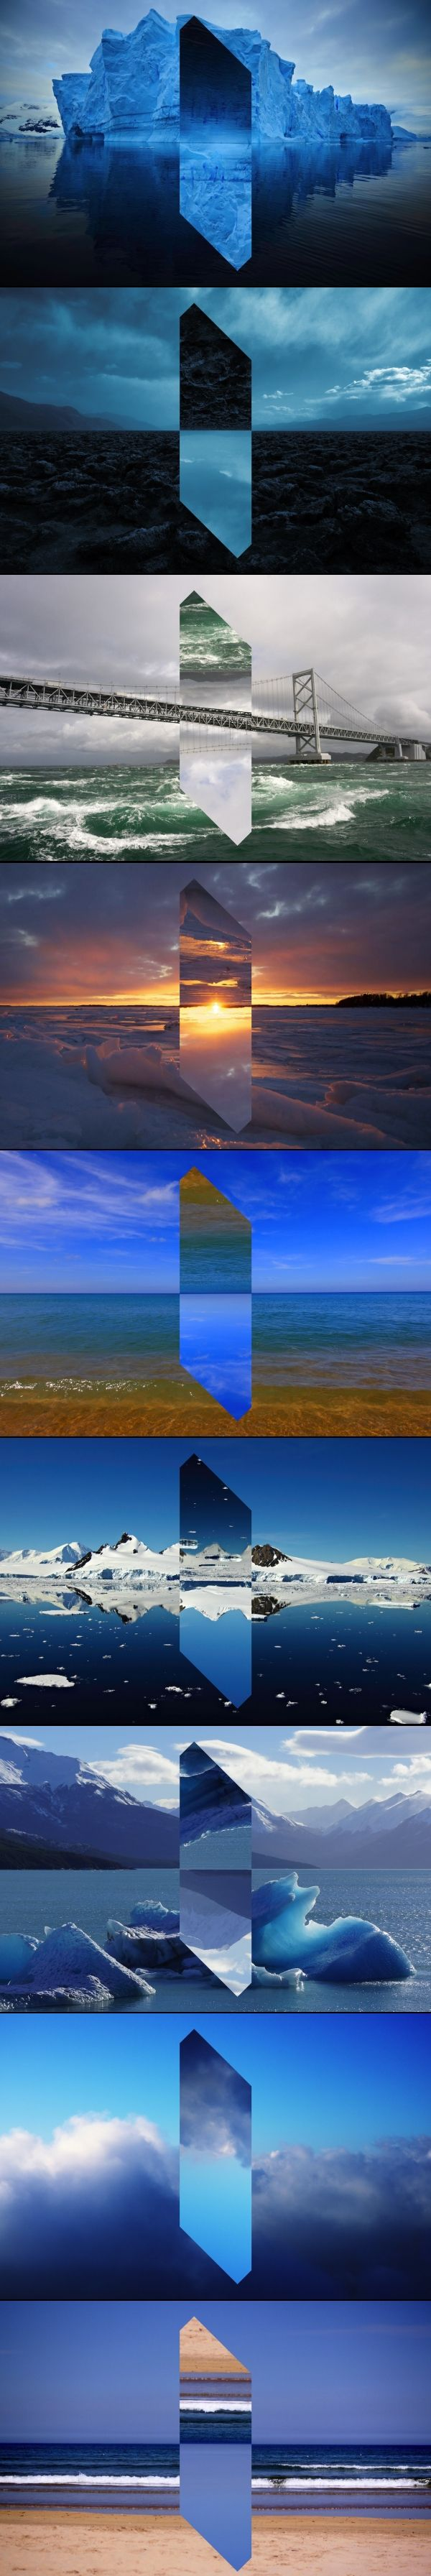 Multimedia artist Reynald Drouhin's revises crystal clear landscapes in his series 'Landscape Monolith', by turning sections of the land upside-down.